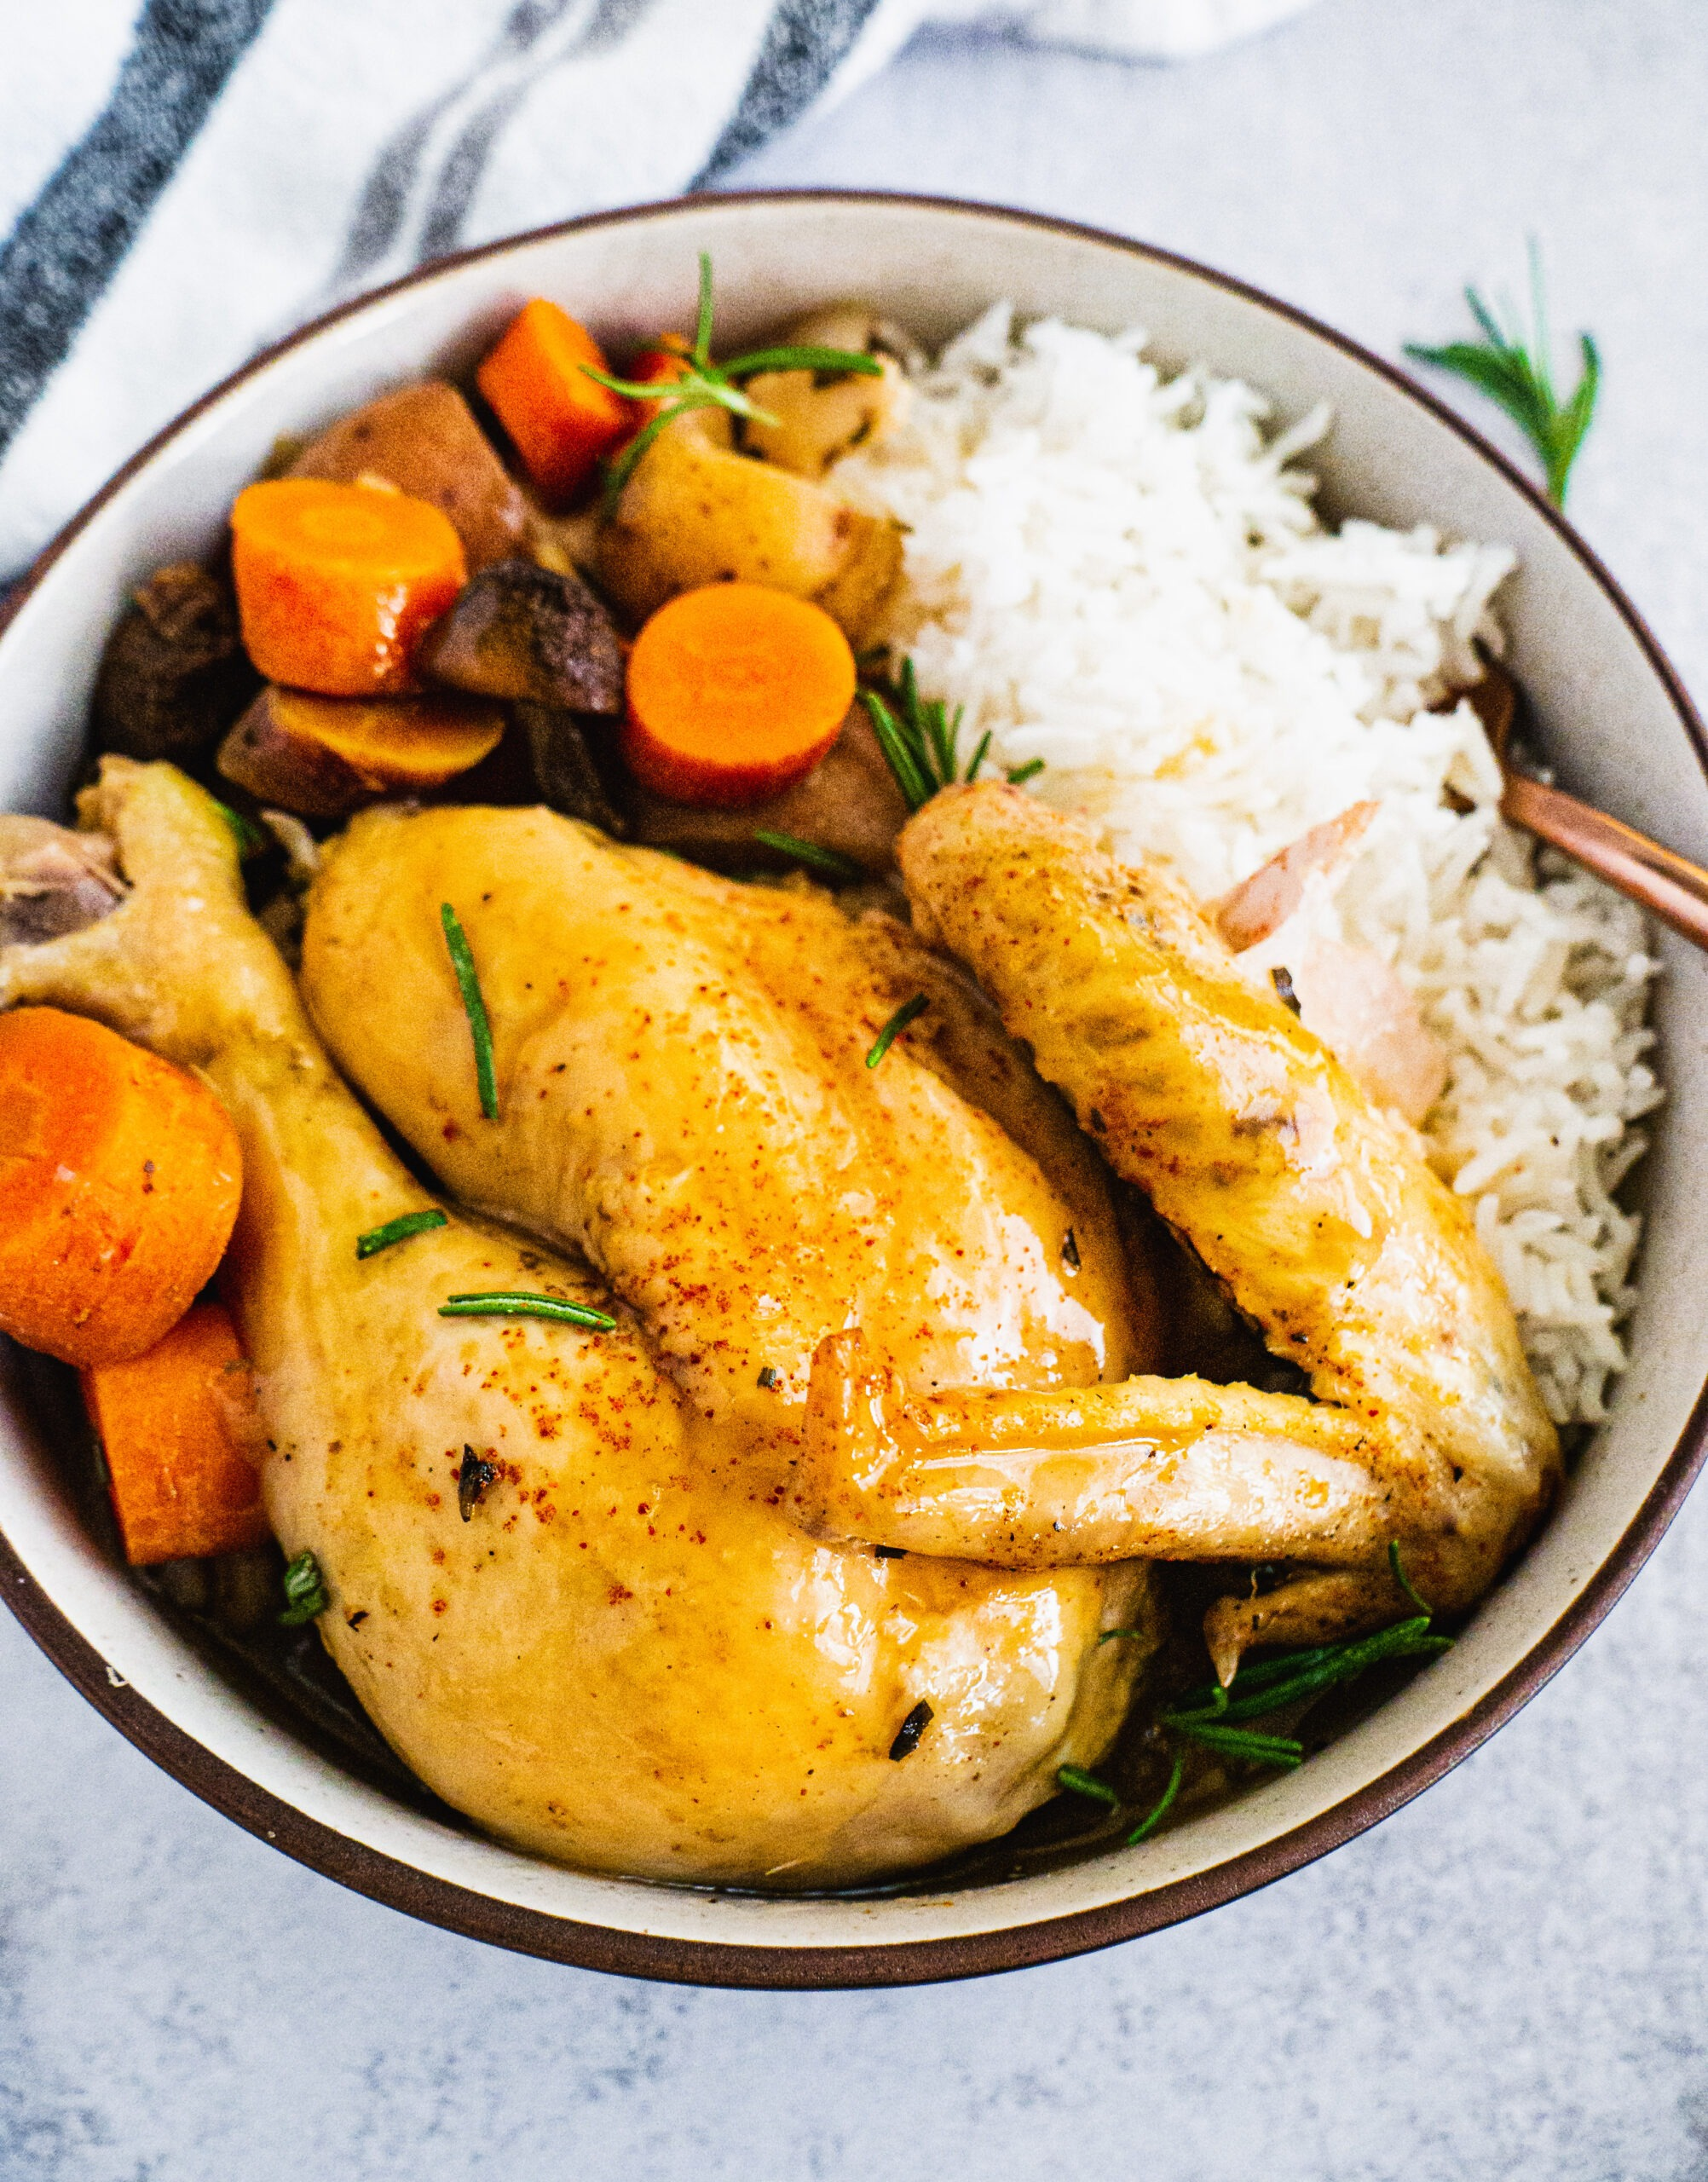 Slow Cooker Chicken in a bowl with vegetables, potatoes and rice.